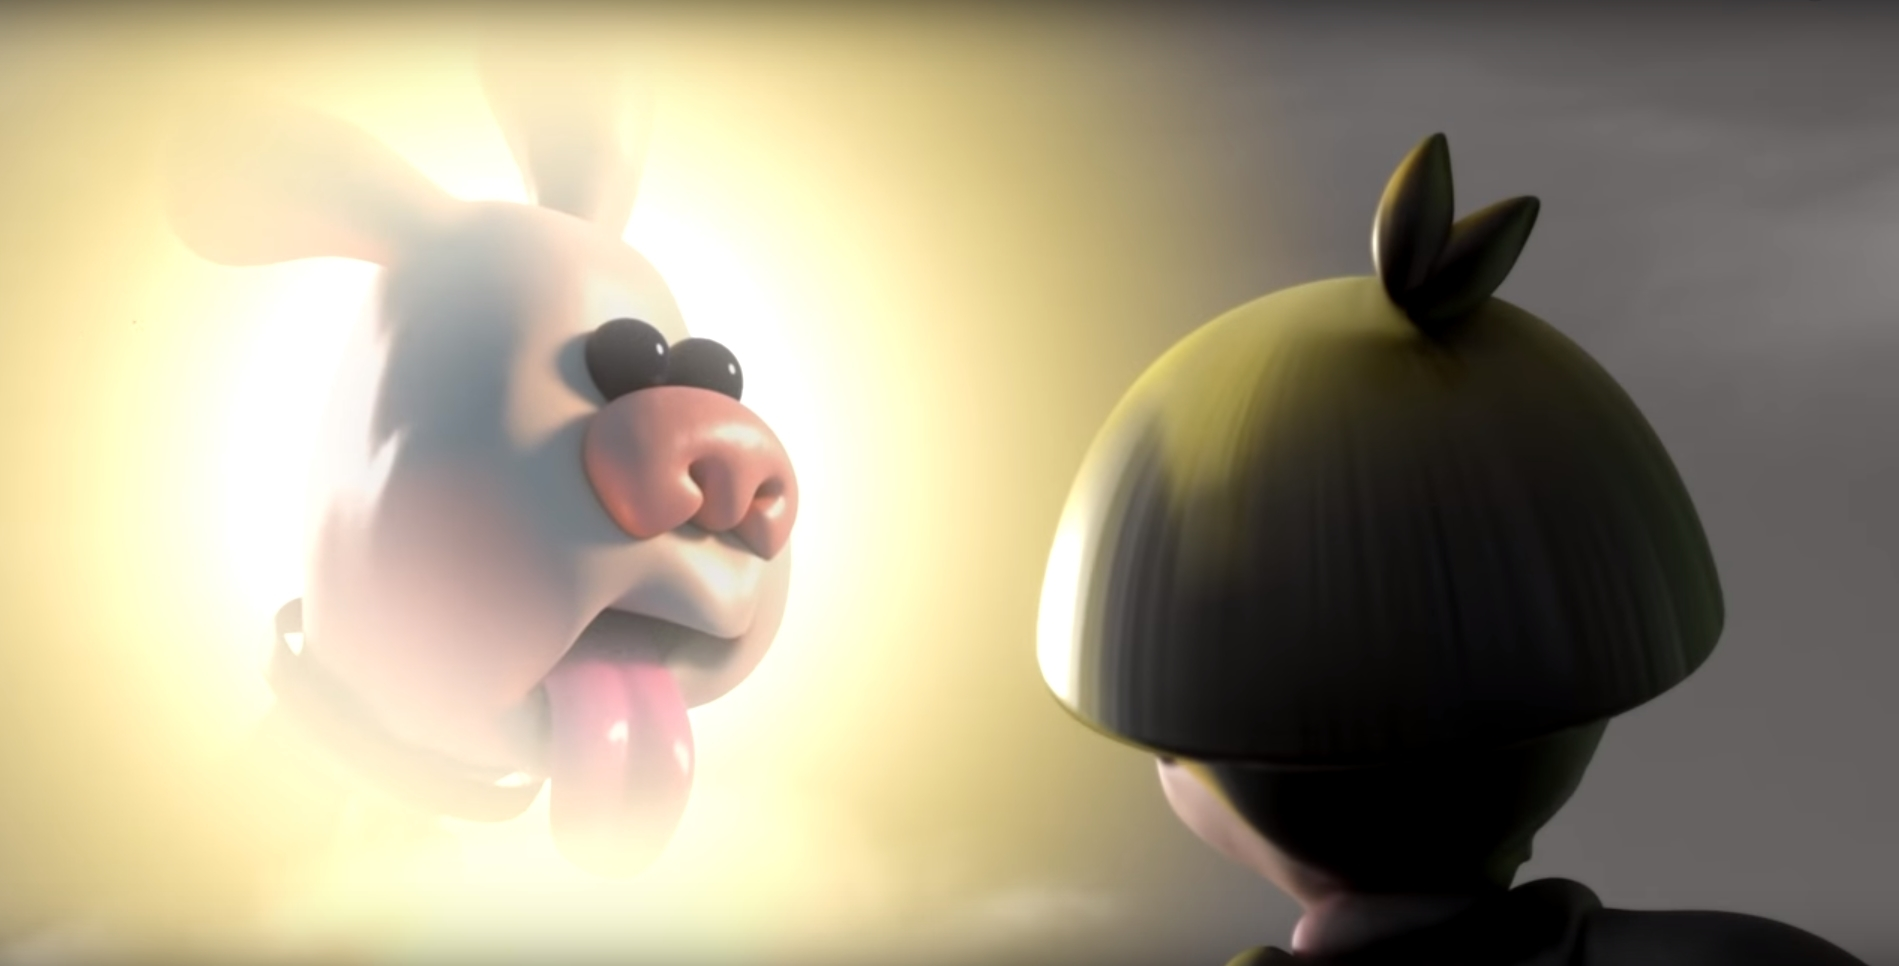 OneyWare Releases Gameplay Trailer For Debut Game Bowlbo: The Quest For Bing Bing